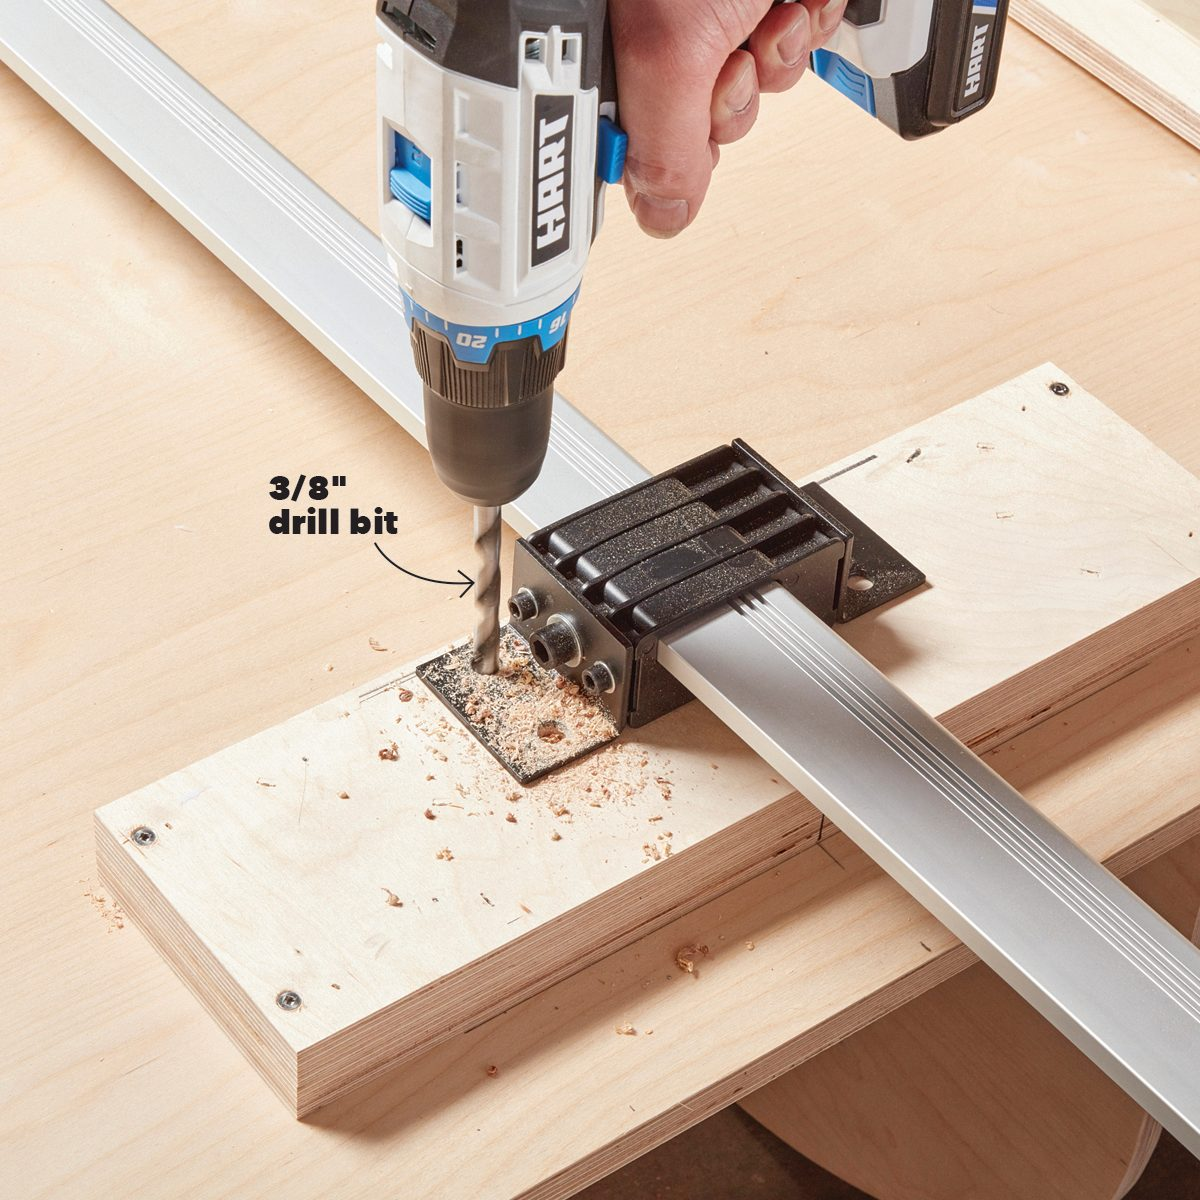 Drilling holes in the shelf mount